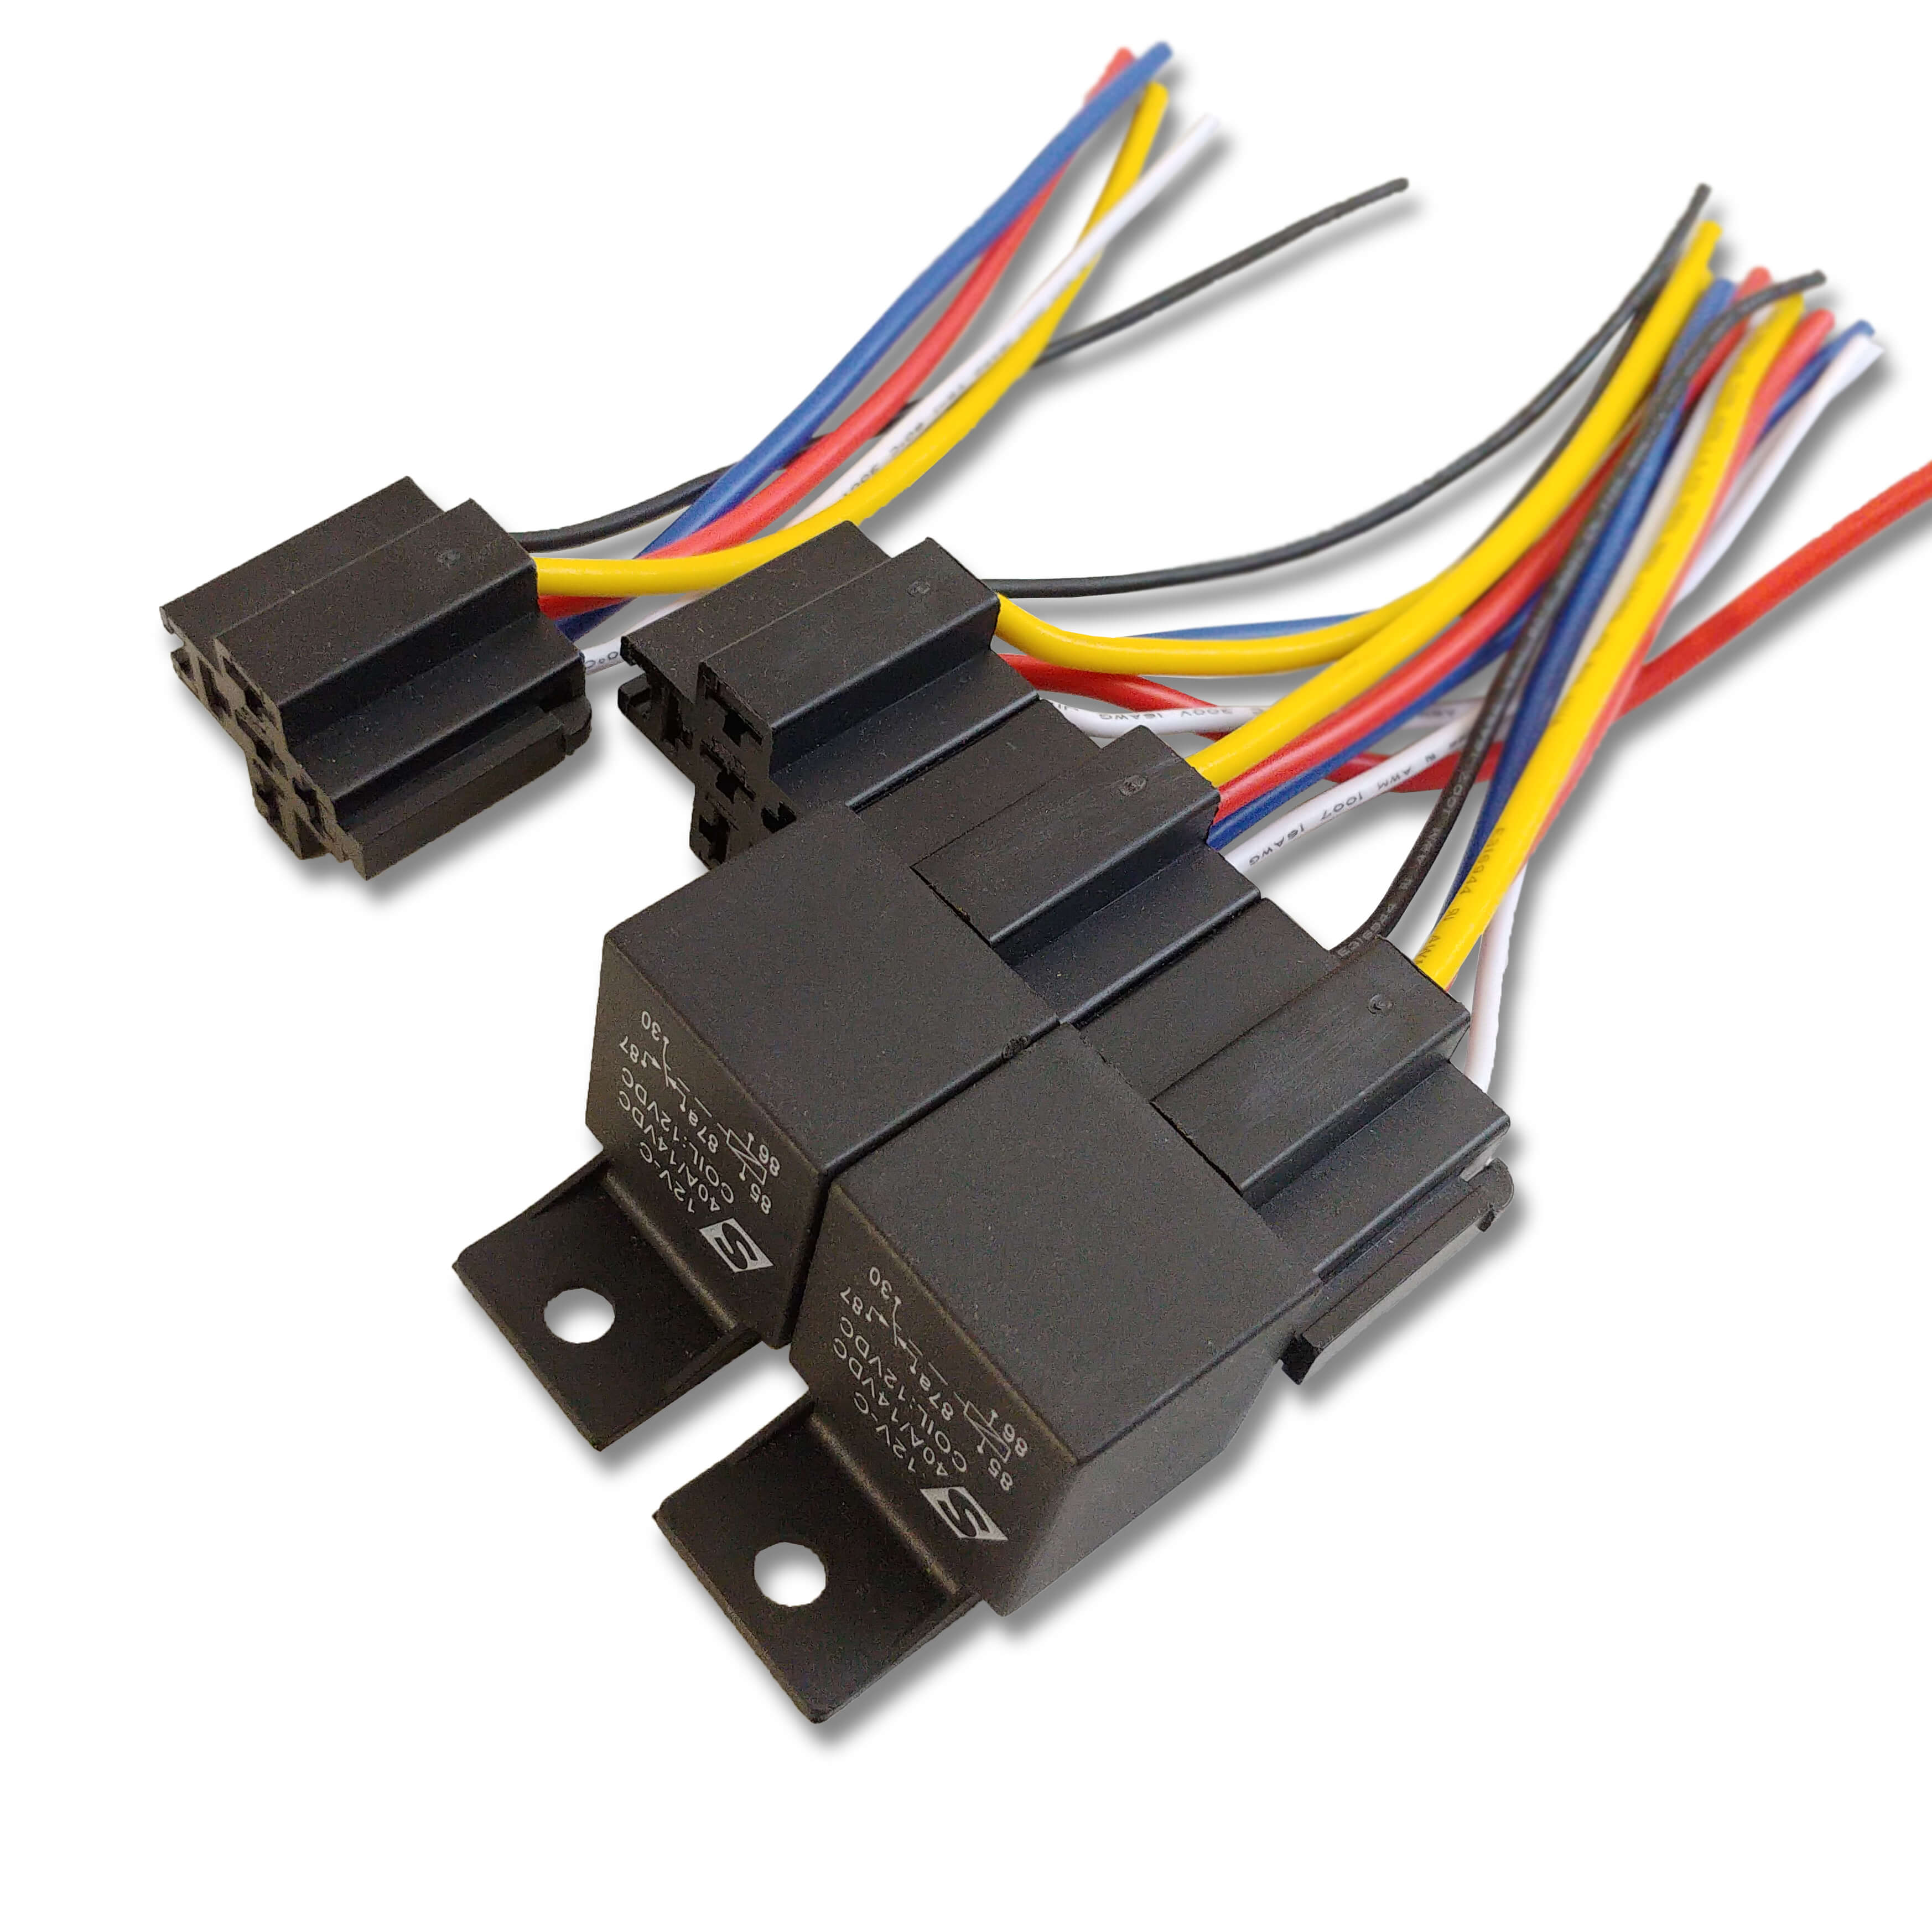 4 pack 40a automotive relay 12vdc coil w wire harness sparked rh shop sparkedinnovations com